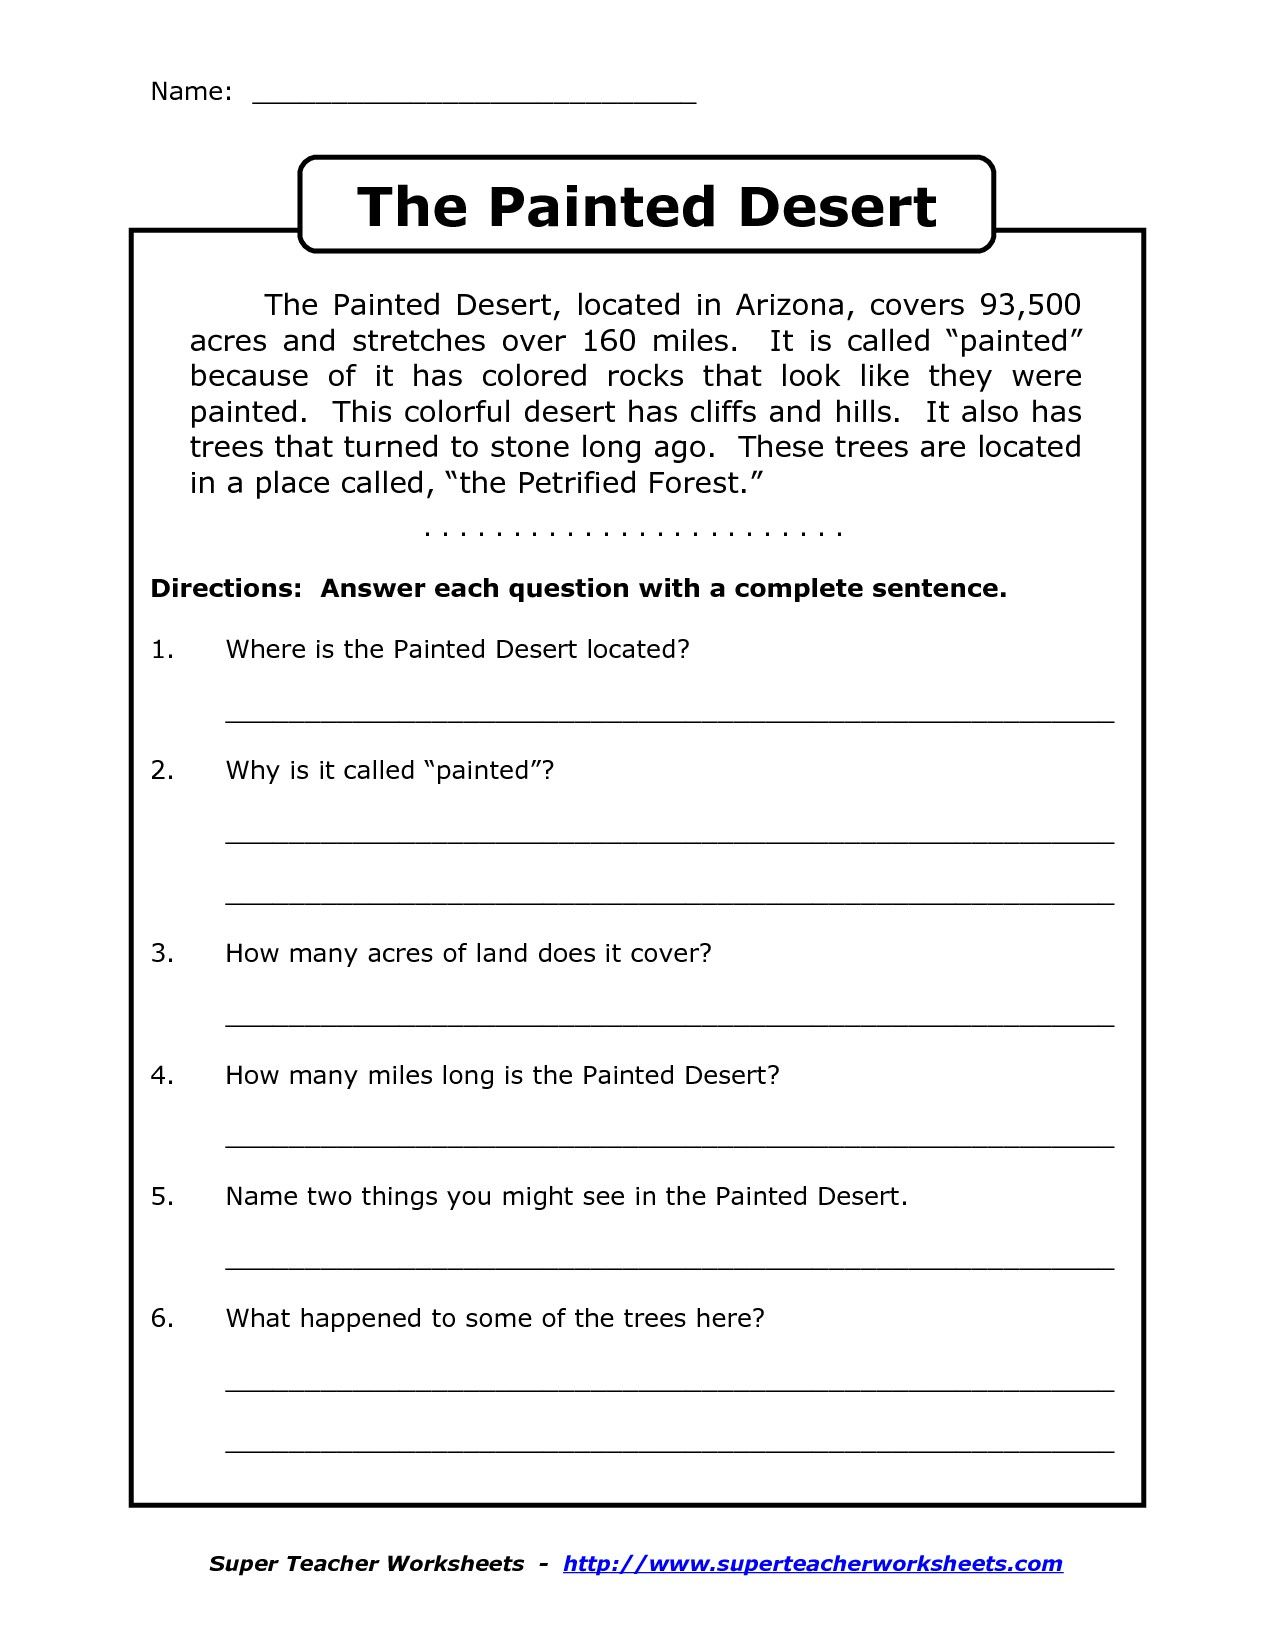 Worksheet Reading Worksheets For Grade 3 worksheet grade 3 reading comprehension worksheets printable free literacy for reading